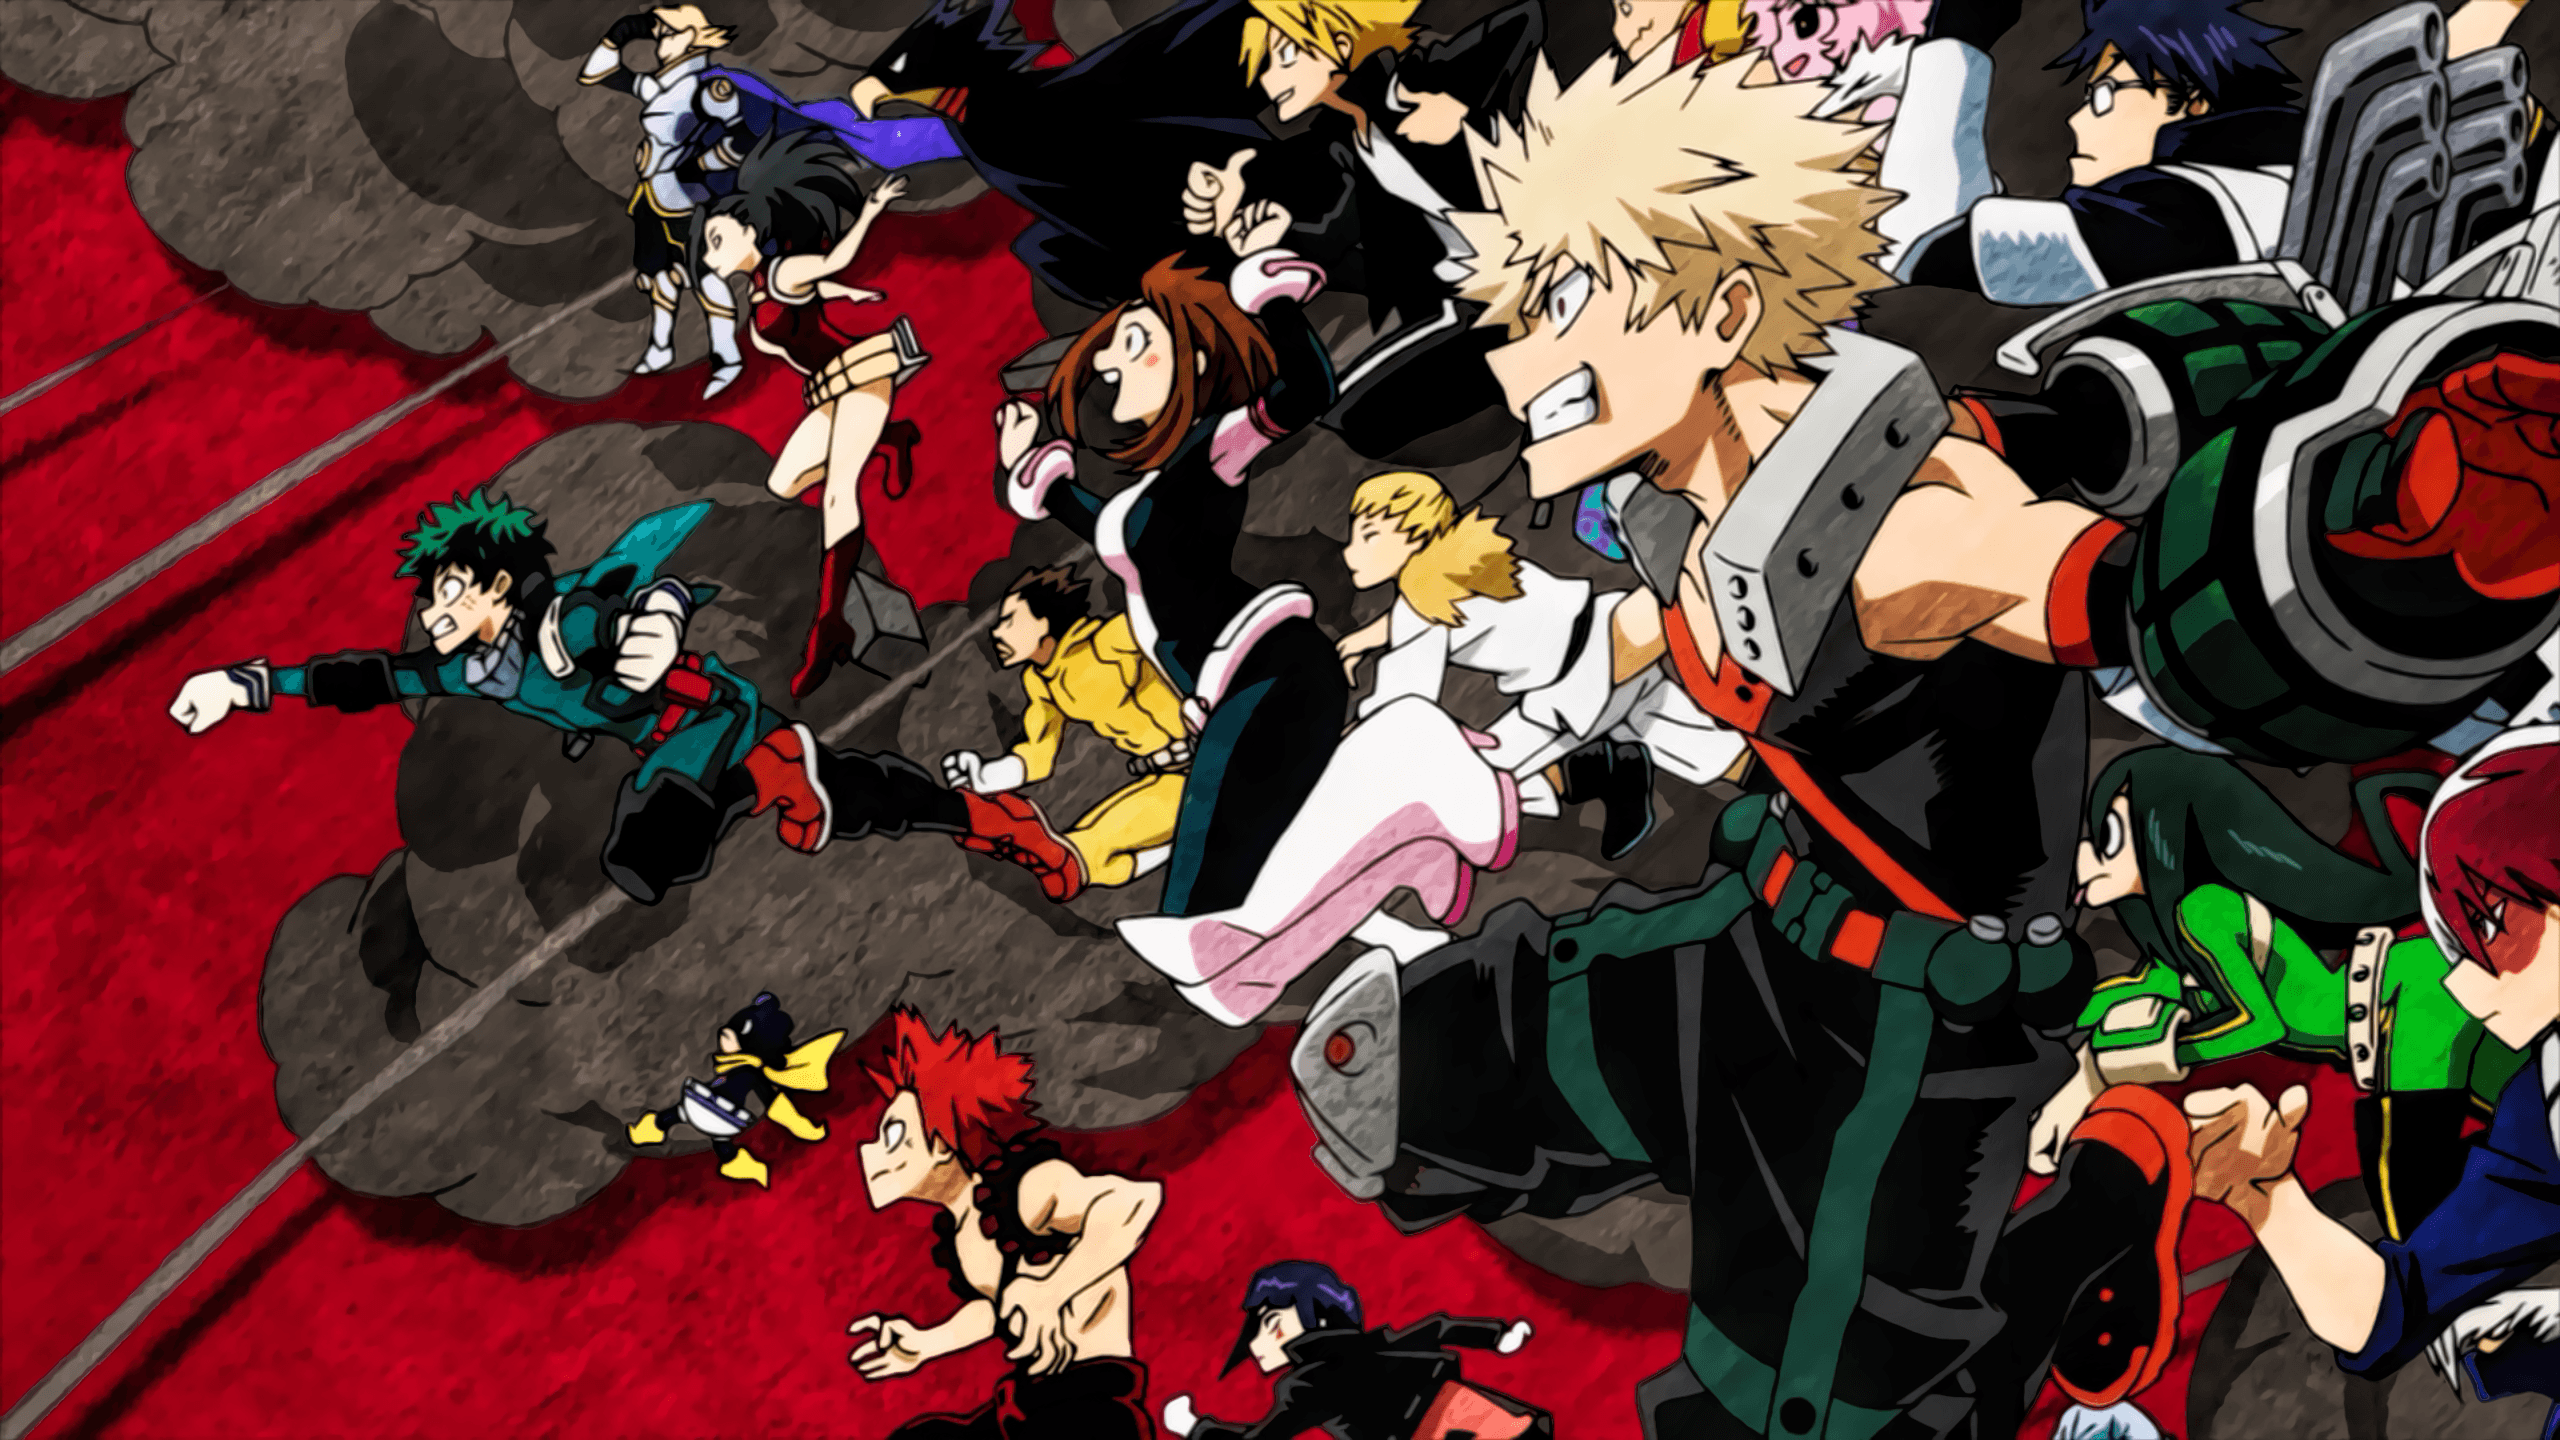 2560x1440 72 Momo Yaoyorozu Hd Wallpapers Background Images Wallpaper Abyss Hero Wallpaper My Hero Academia Anime Characters